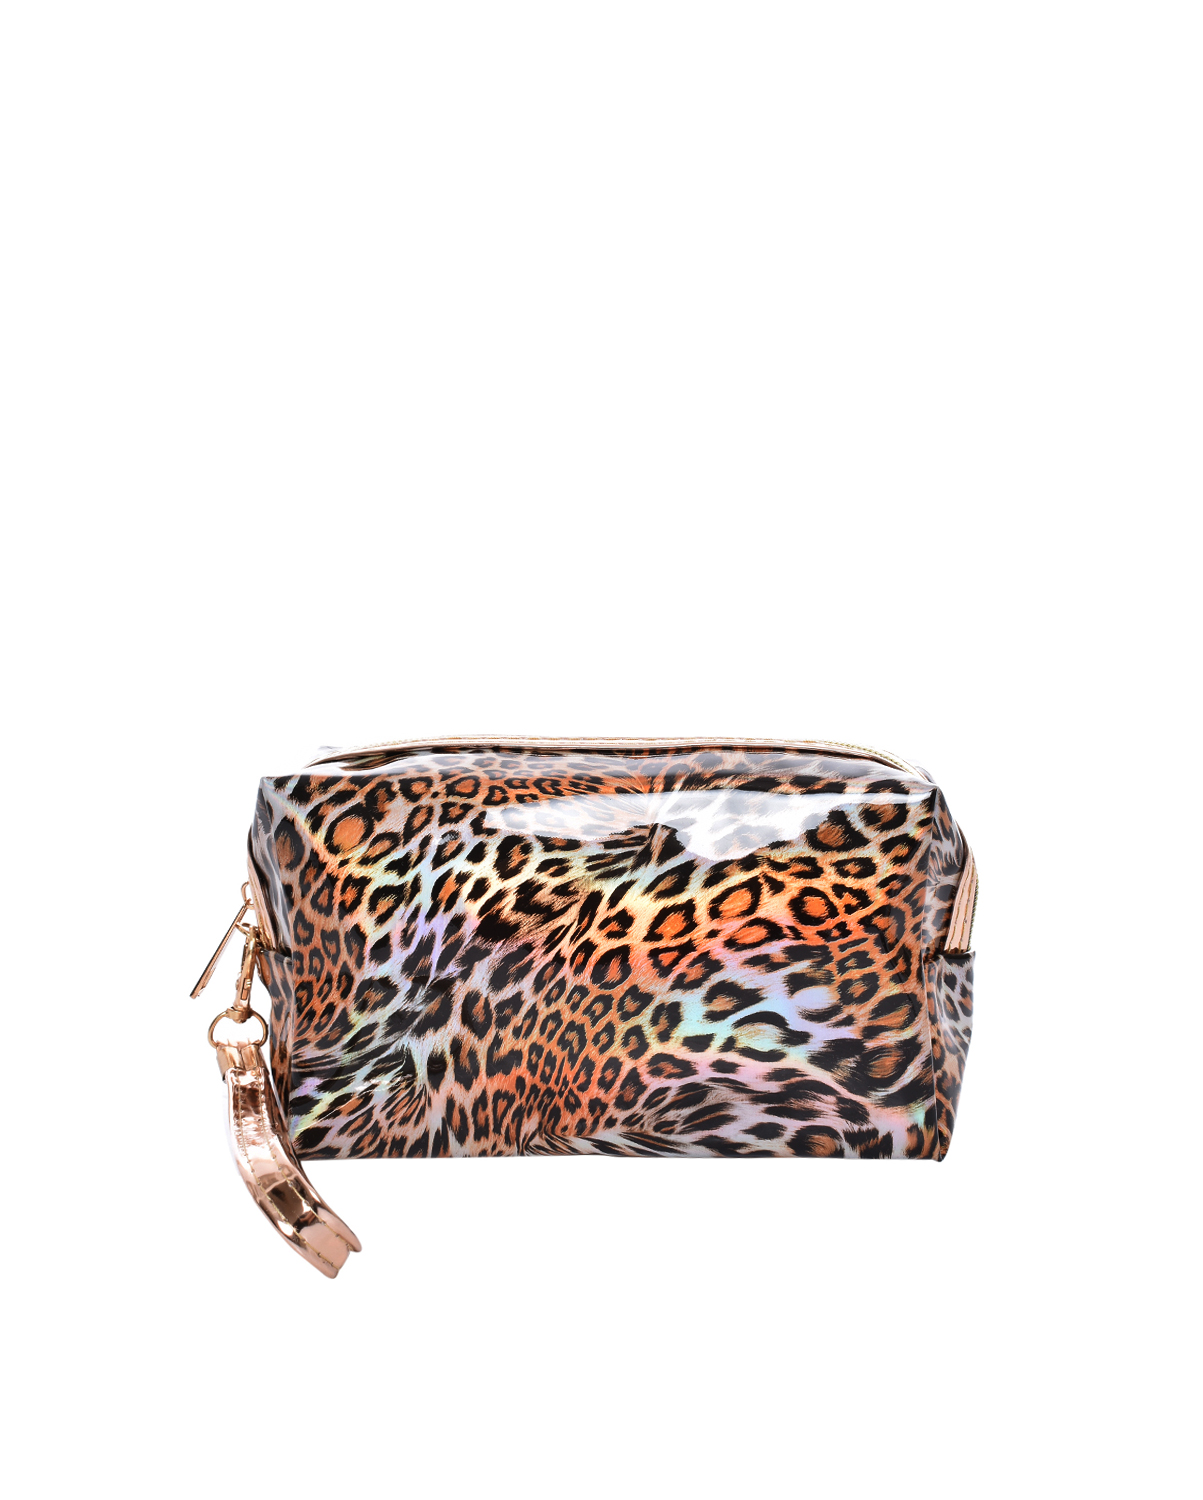 AO807(BR)-wholesale-cosmetic-beauty-bag-leopard-animal-pattern-patent-leatherette-metallic-gold-wristlet(0).jpg